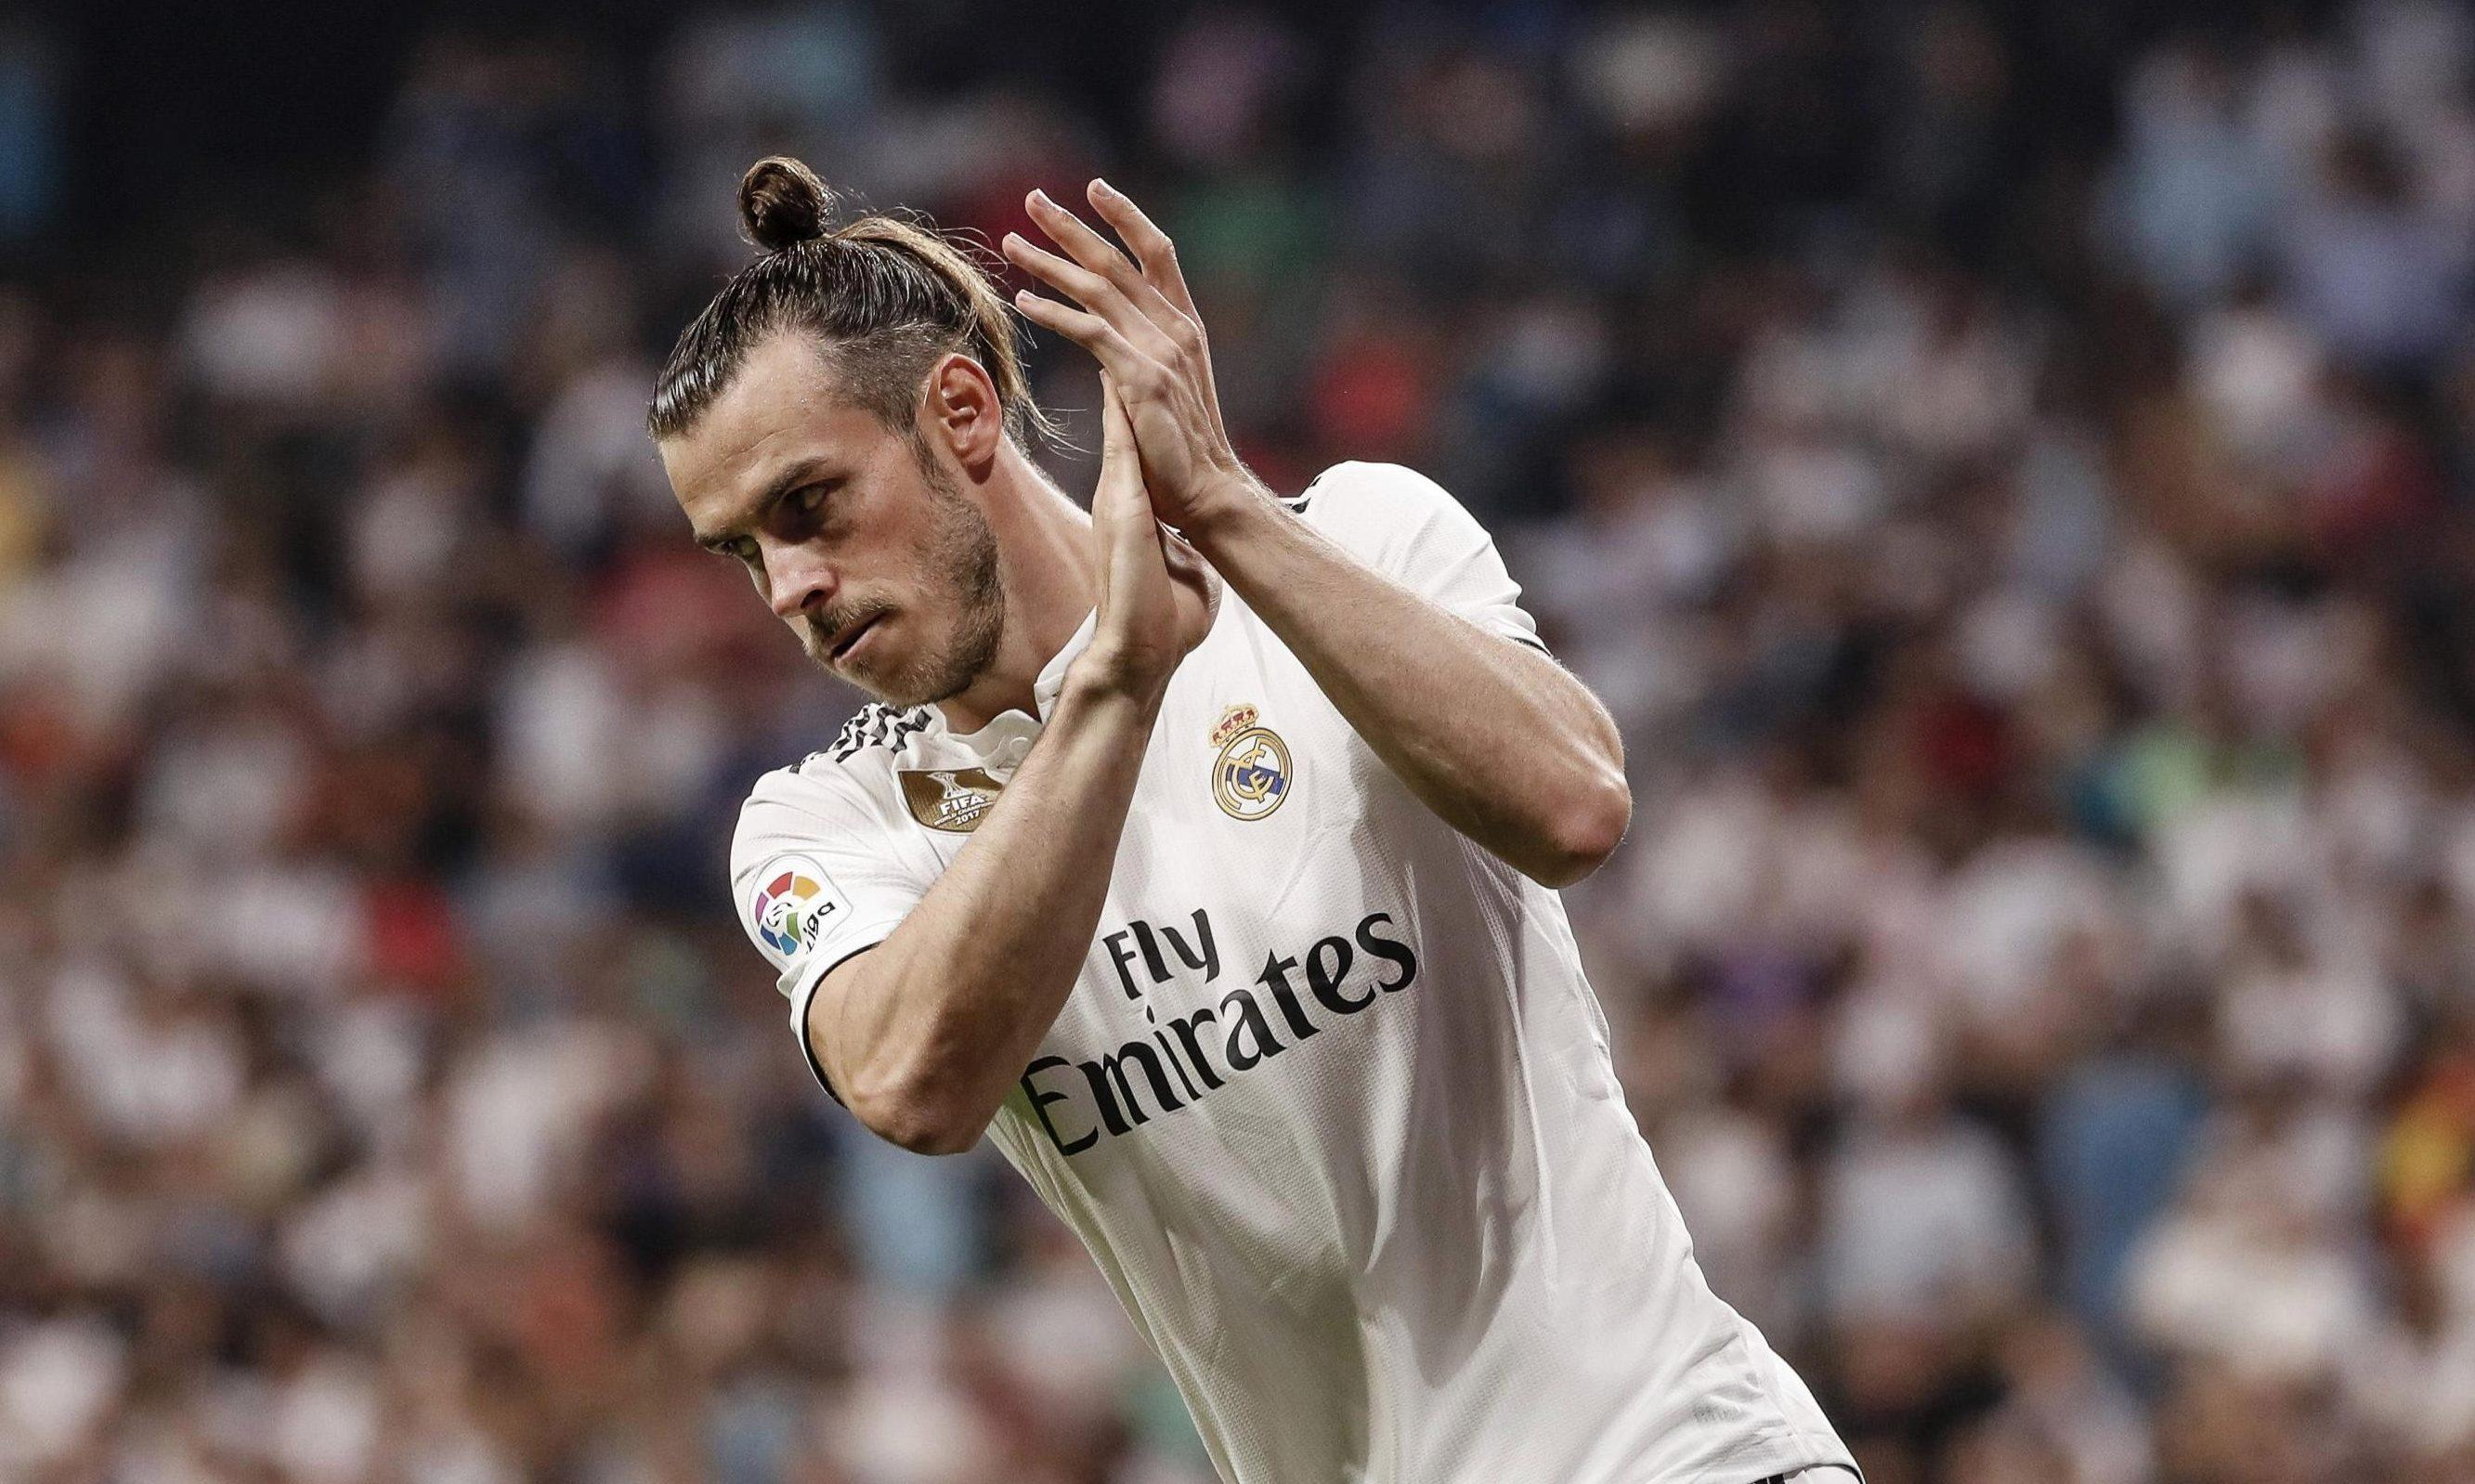 Gareth Bale has had his appearance updated in the game